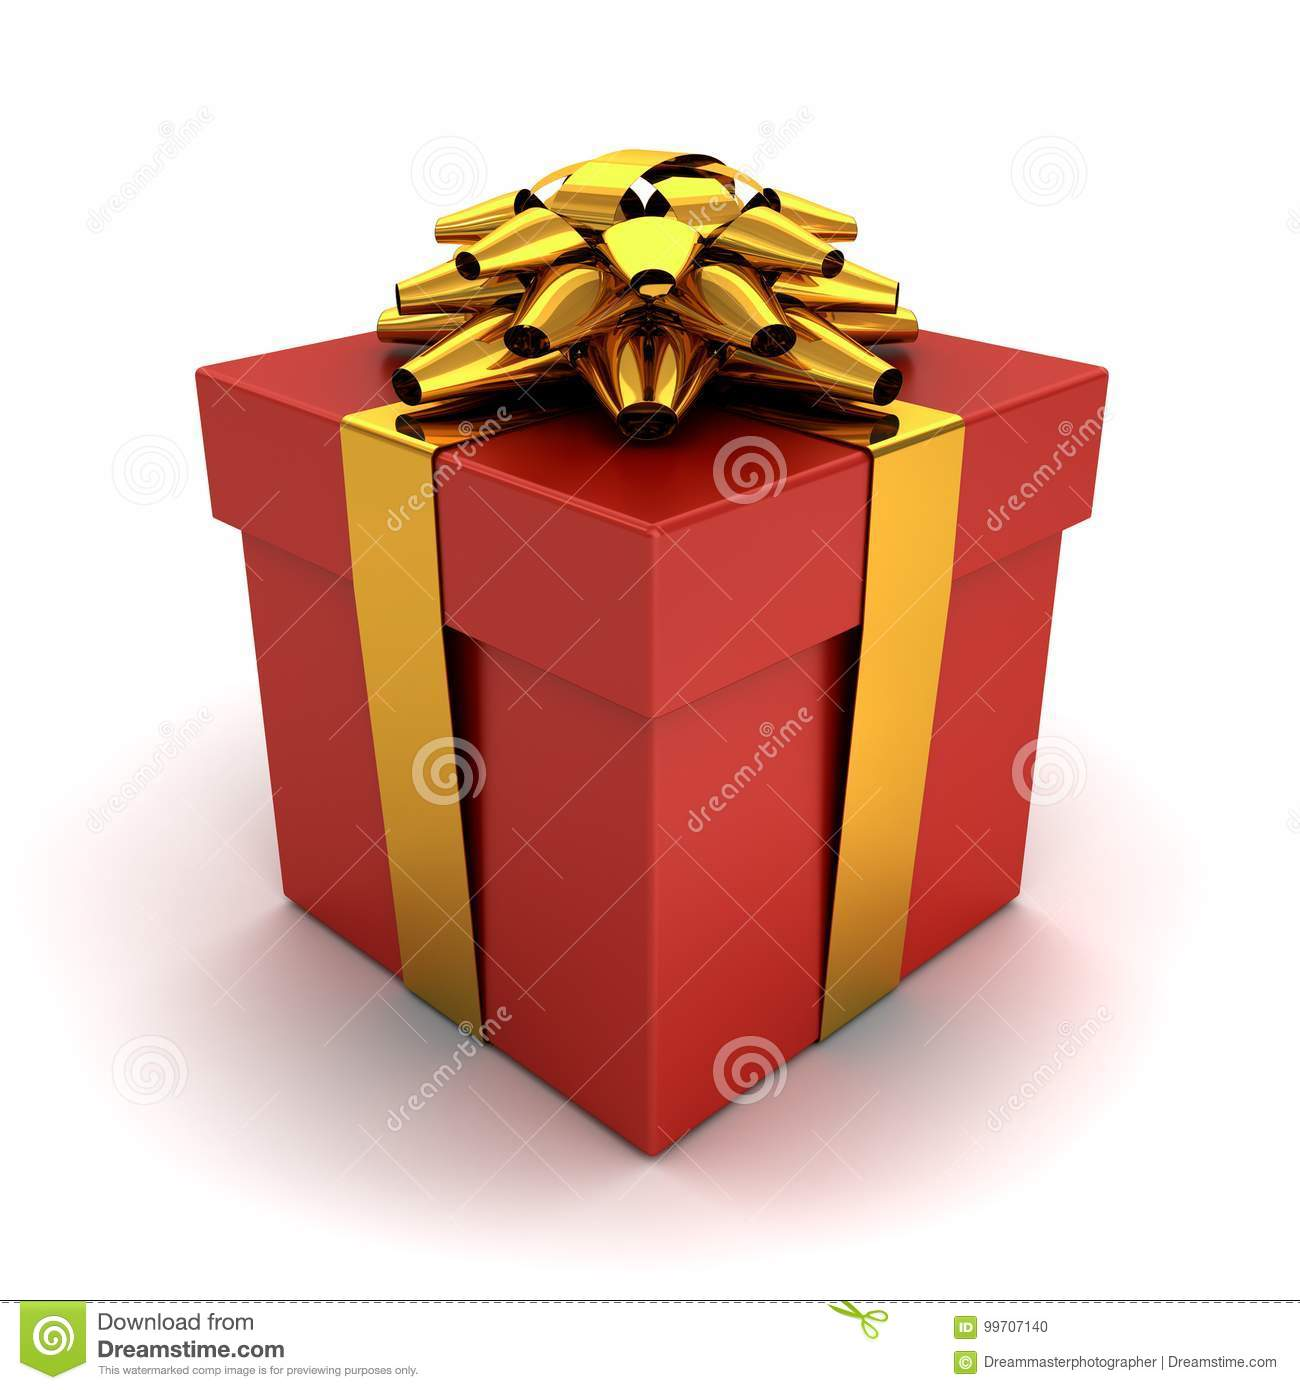 Gift box , Present box with gold ribbon bow isolated on white background with shadow